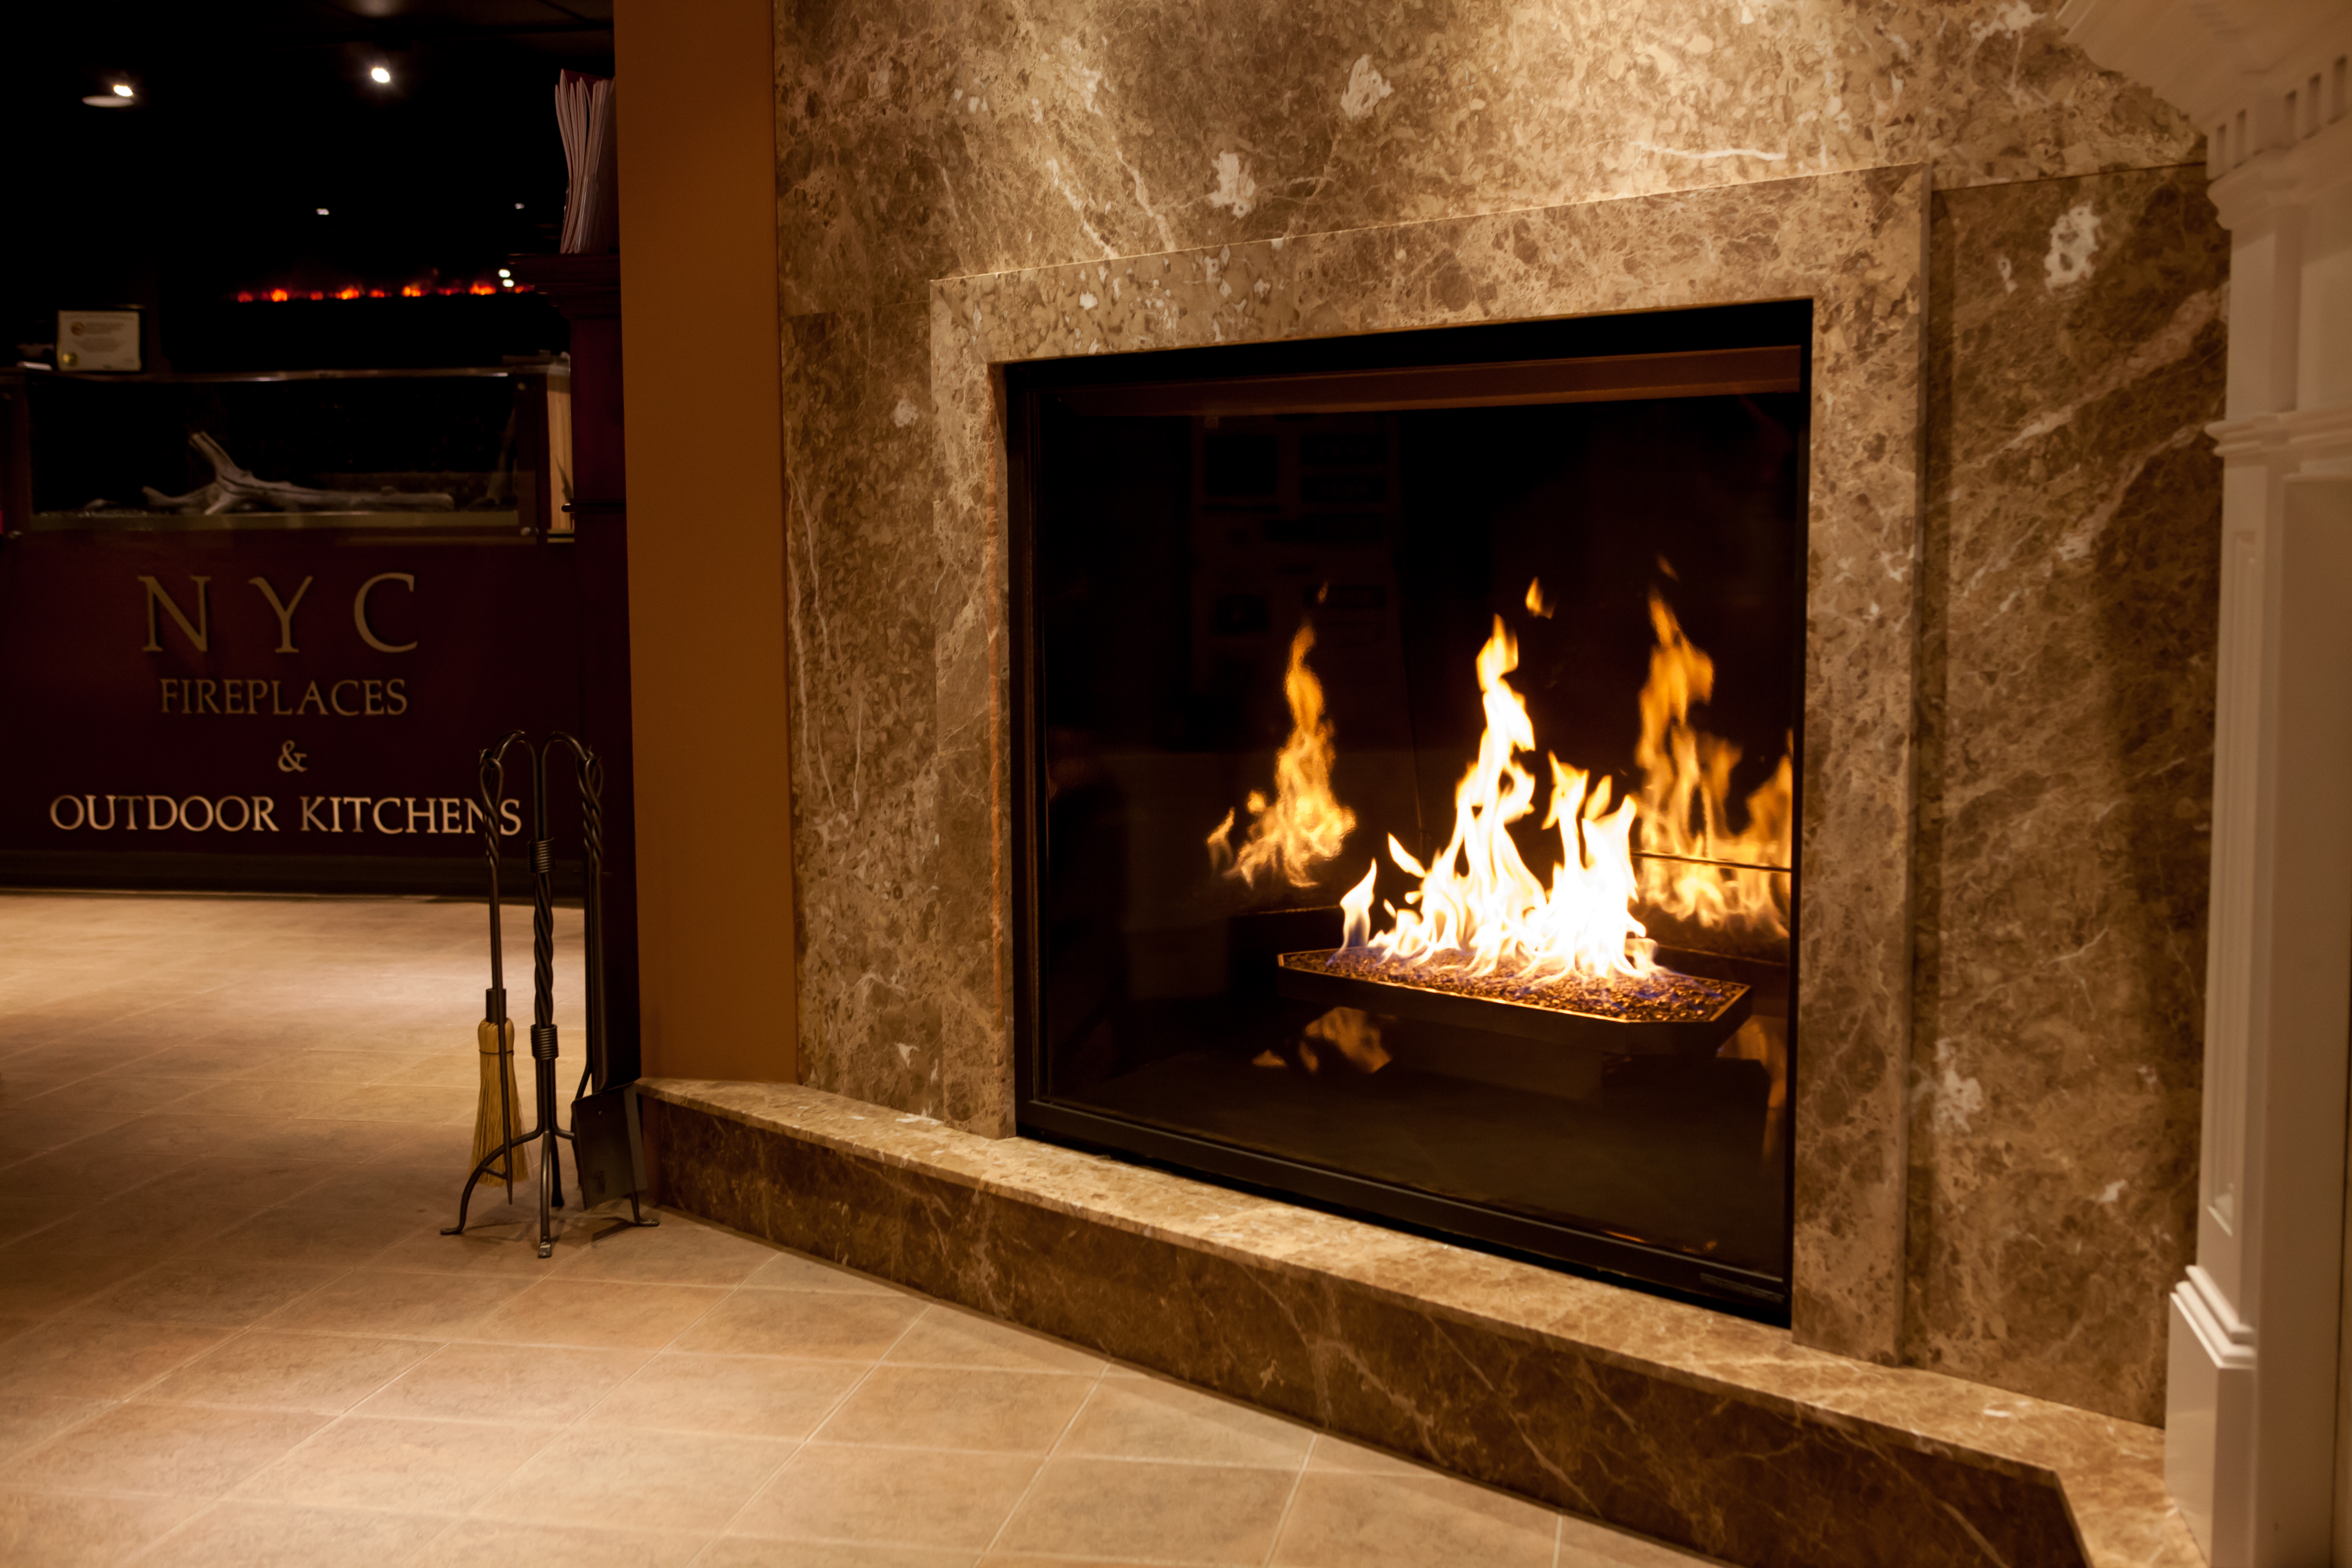 gas electric and wood fireplaces nyc fireplaces outdoor kitchens